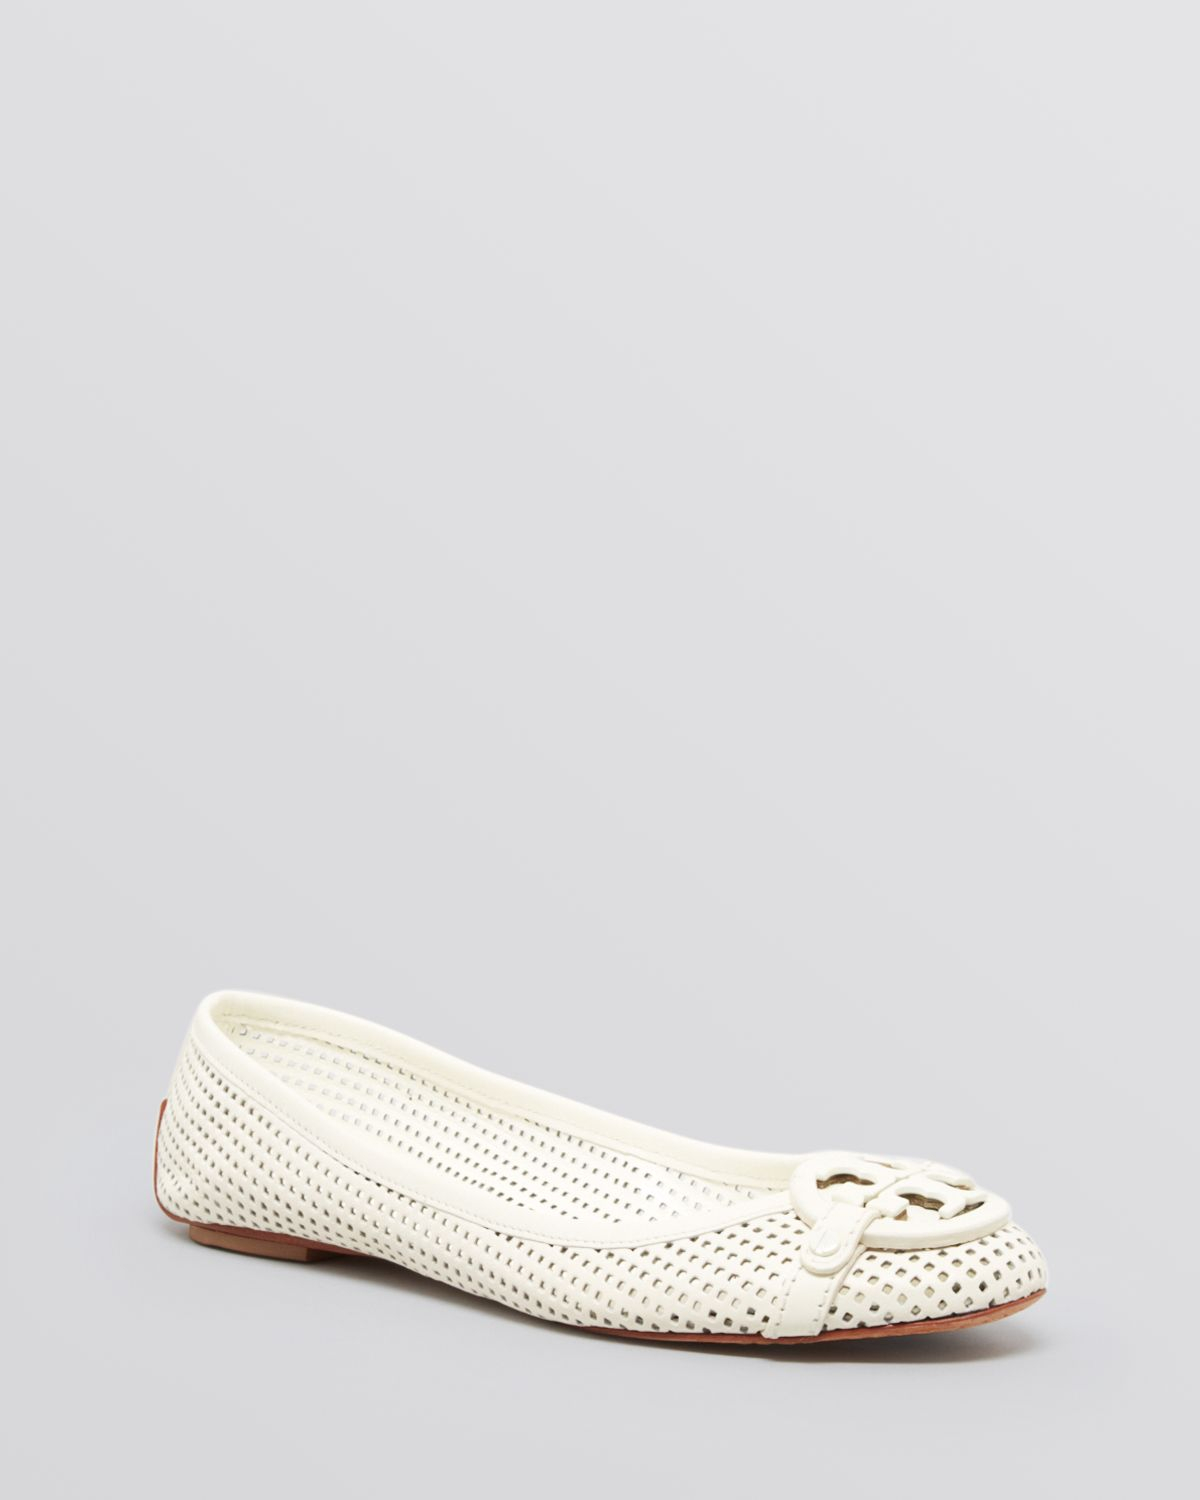 3f1827fc60b Lyst - Tory Burch Ballet Flats Aaden Perforated in White